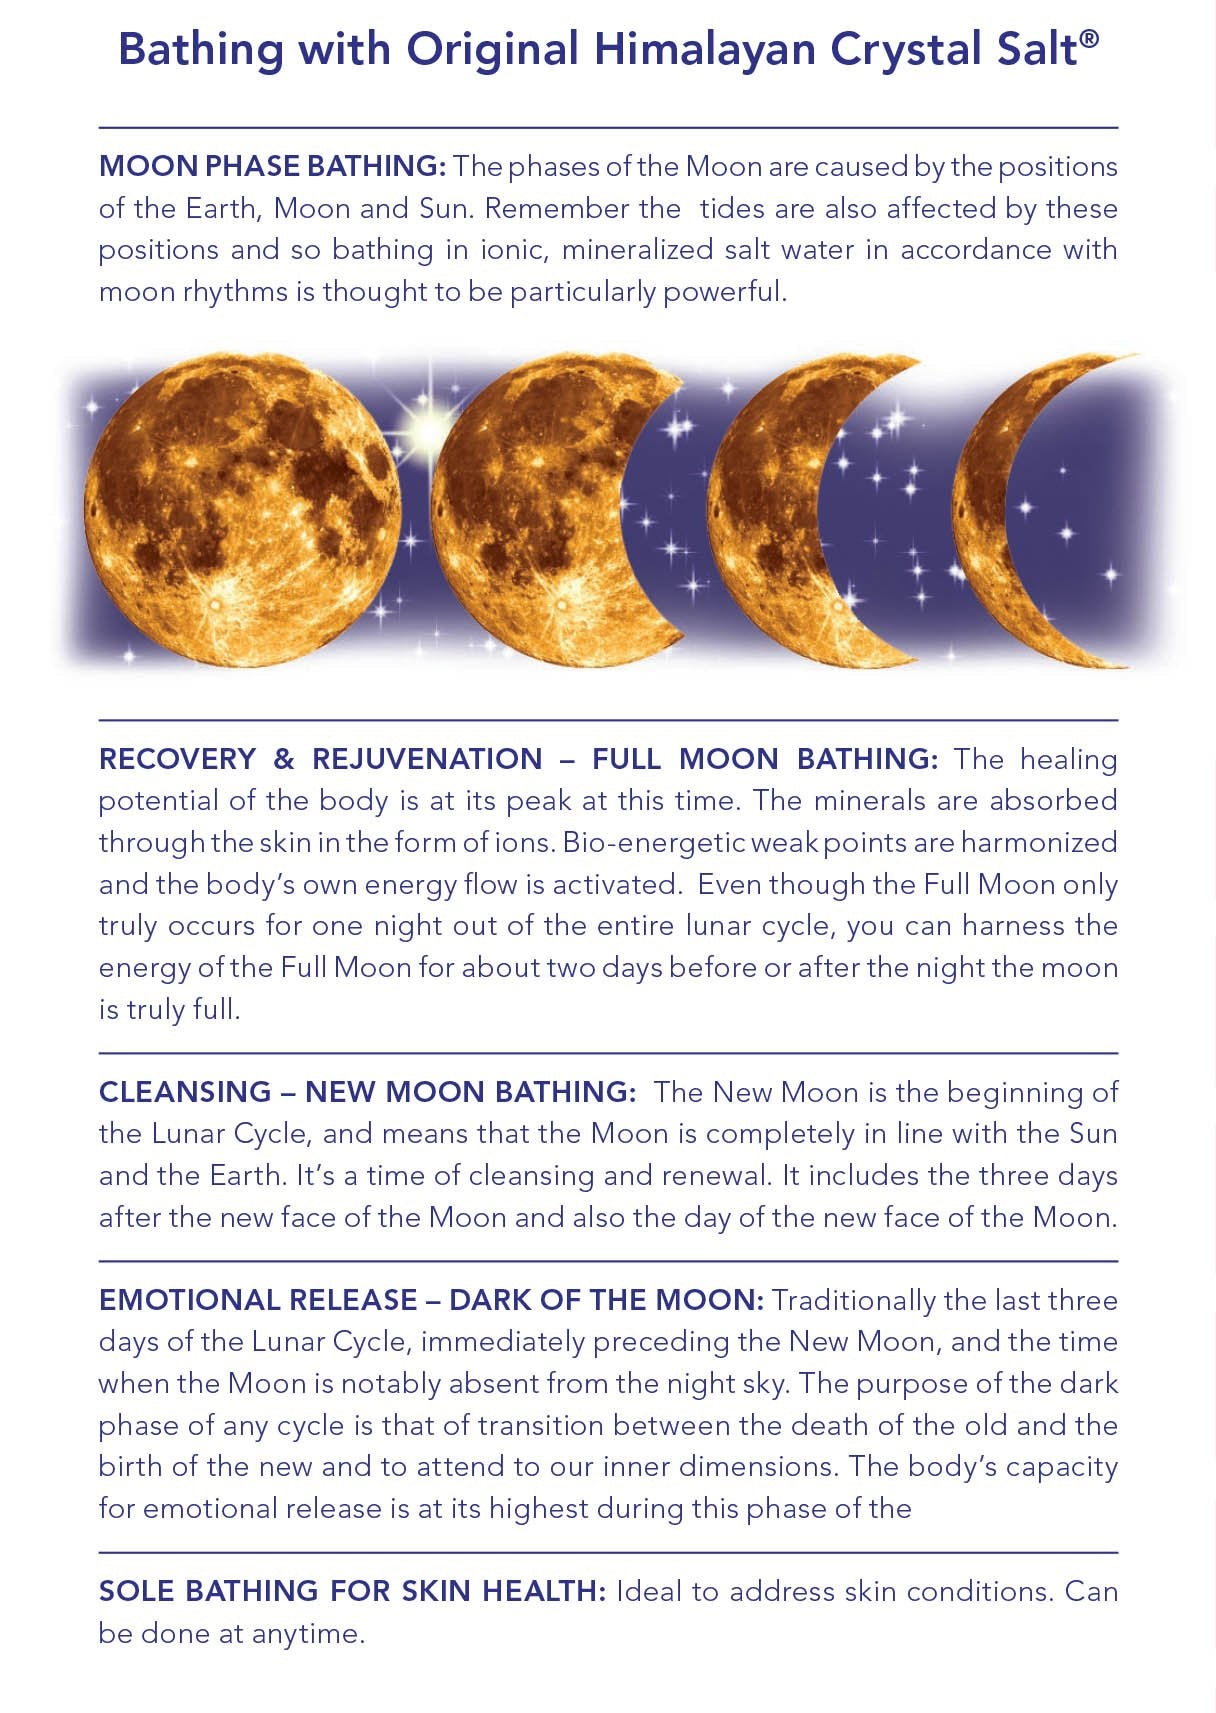 Moon Phase Bathing: The phases of the Moon are caused by the positions of the Earth, Moon and Sun. Remember the tides are also affected by these positions and so bathing in ionic, mineralized salt water in accordance with moon rhythms is thought to be particularly powerful.